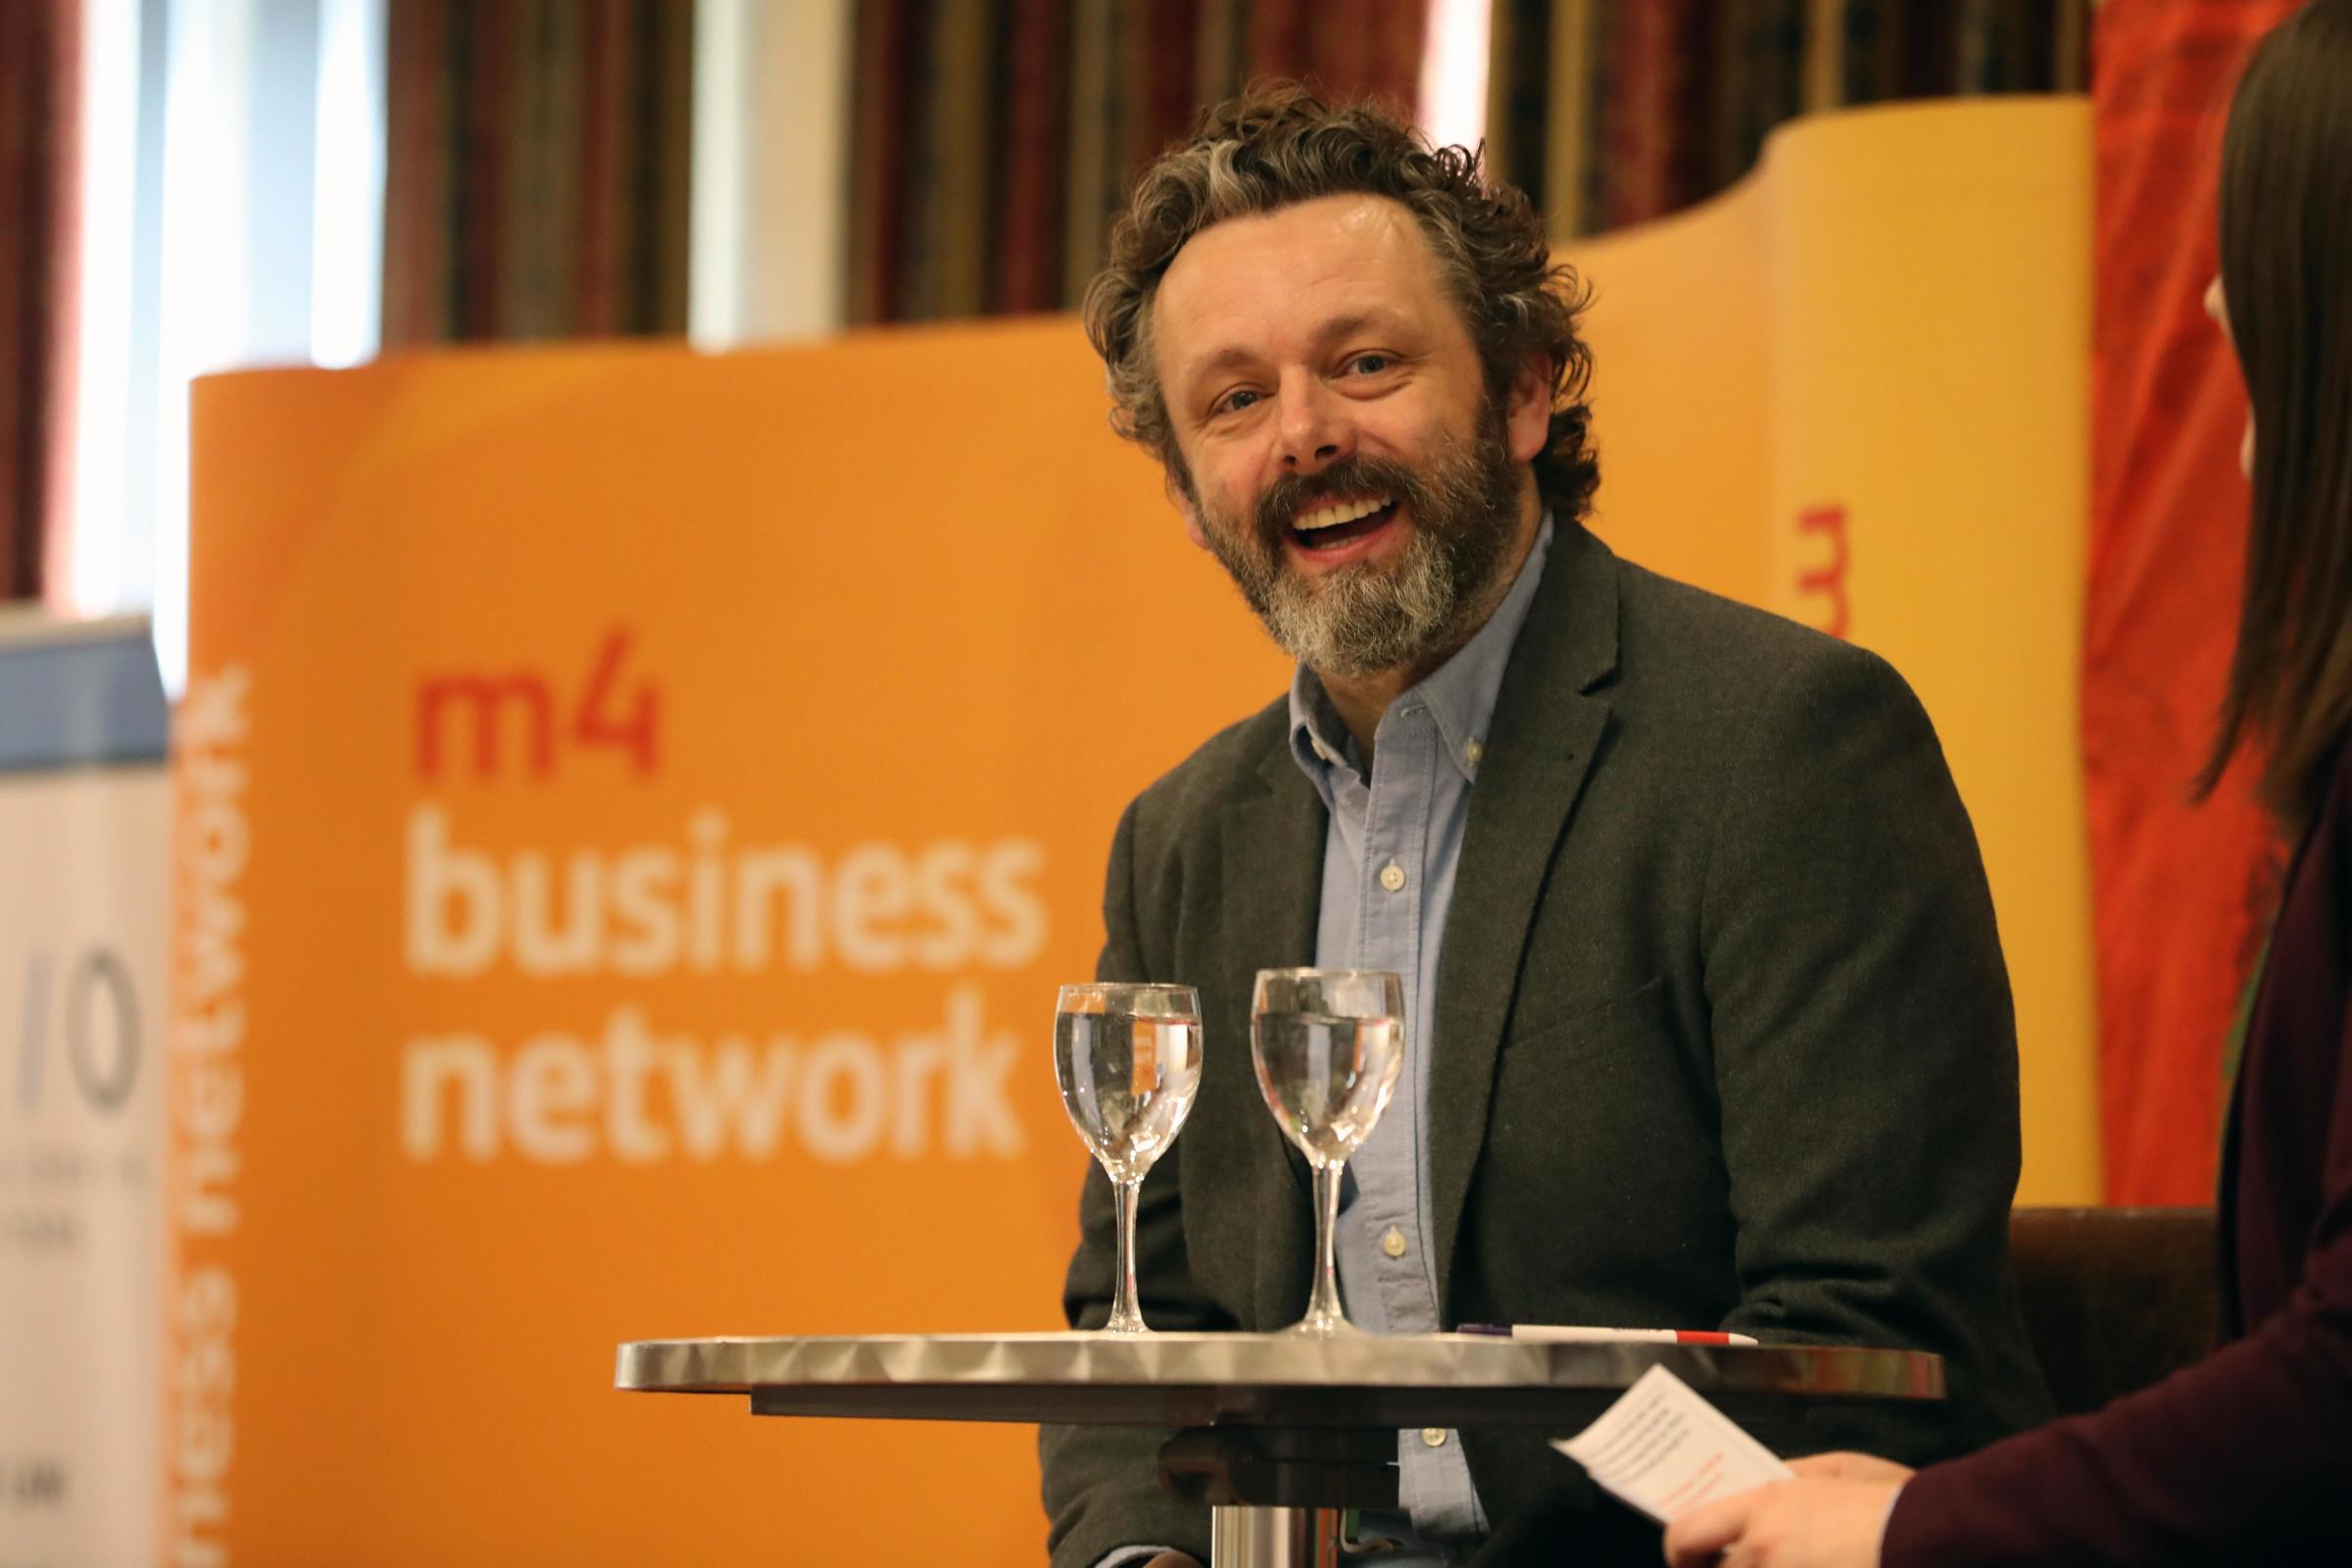 Michael Sheen addresses members and guests of the M4 Business Network